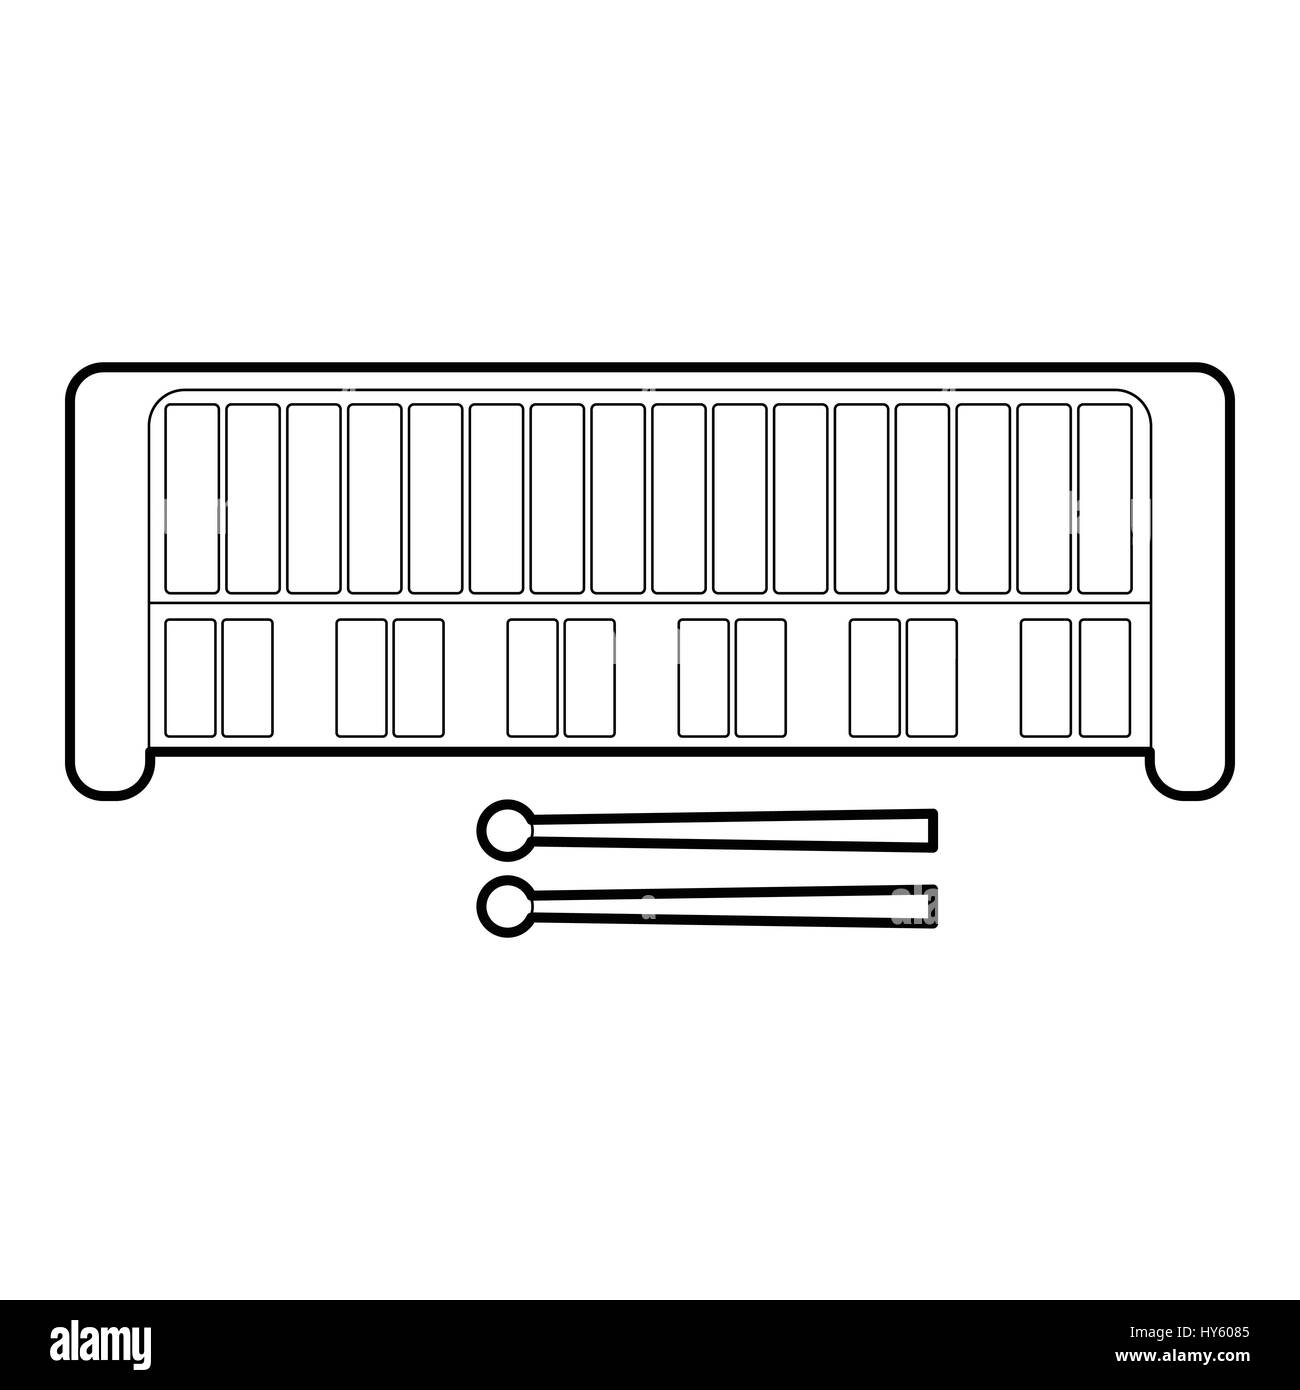 Xylophone Black and White Stock Photos & Images - Alamy